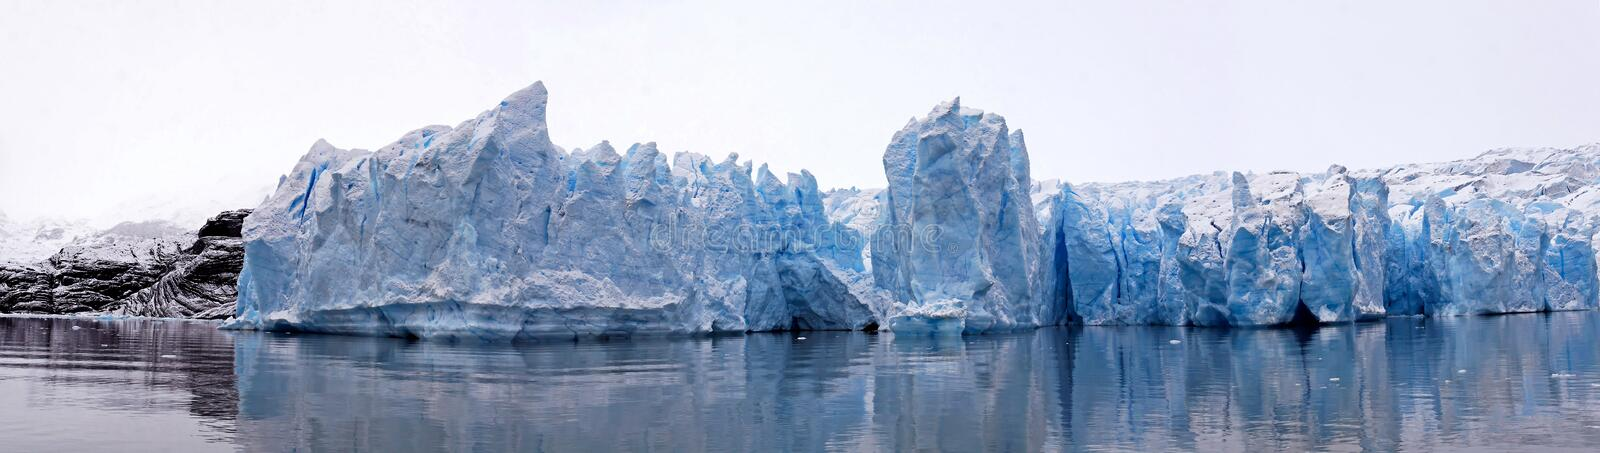 Glacier ice panorama stock images